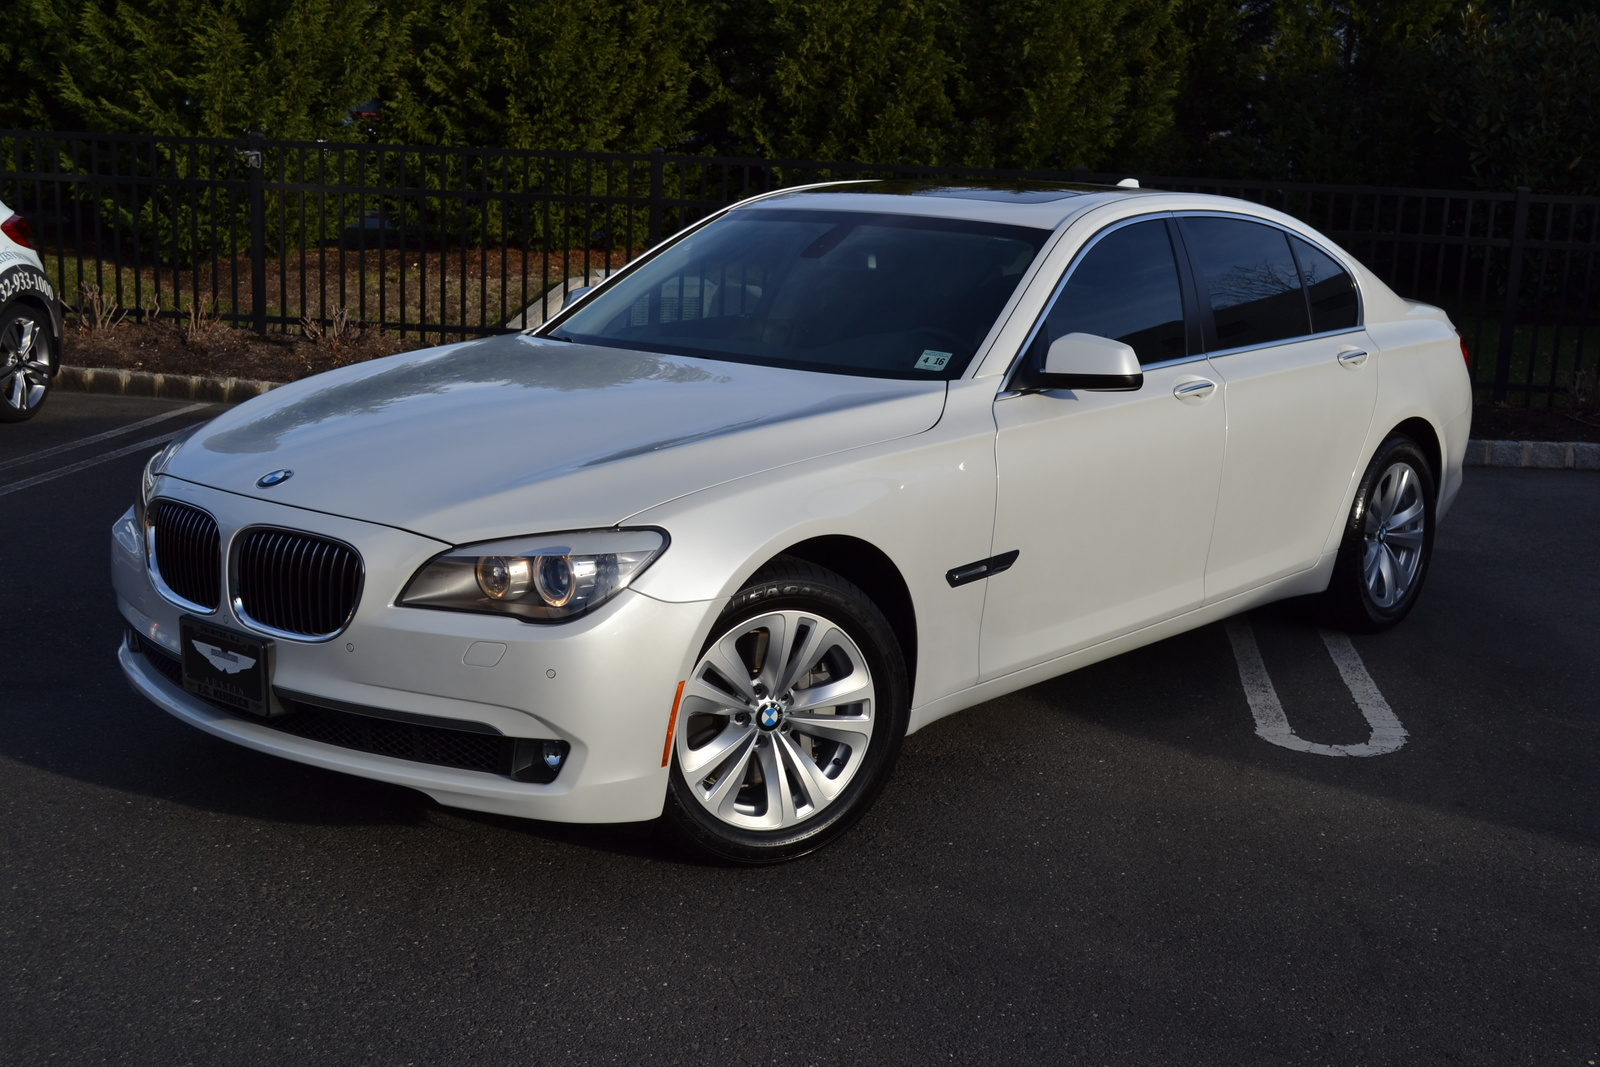 BMW 7 series 740i 2012 photo - 2